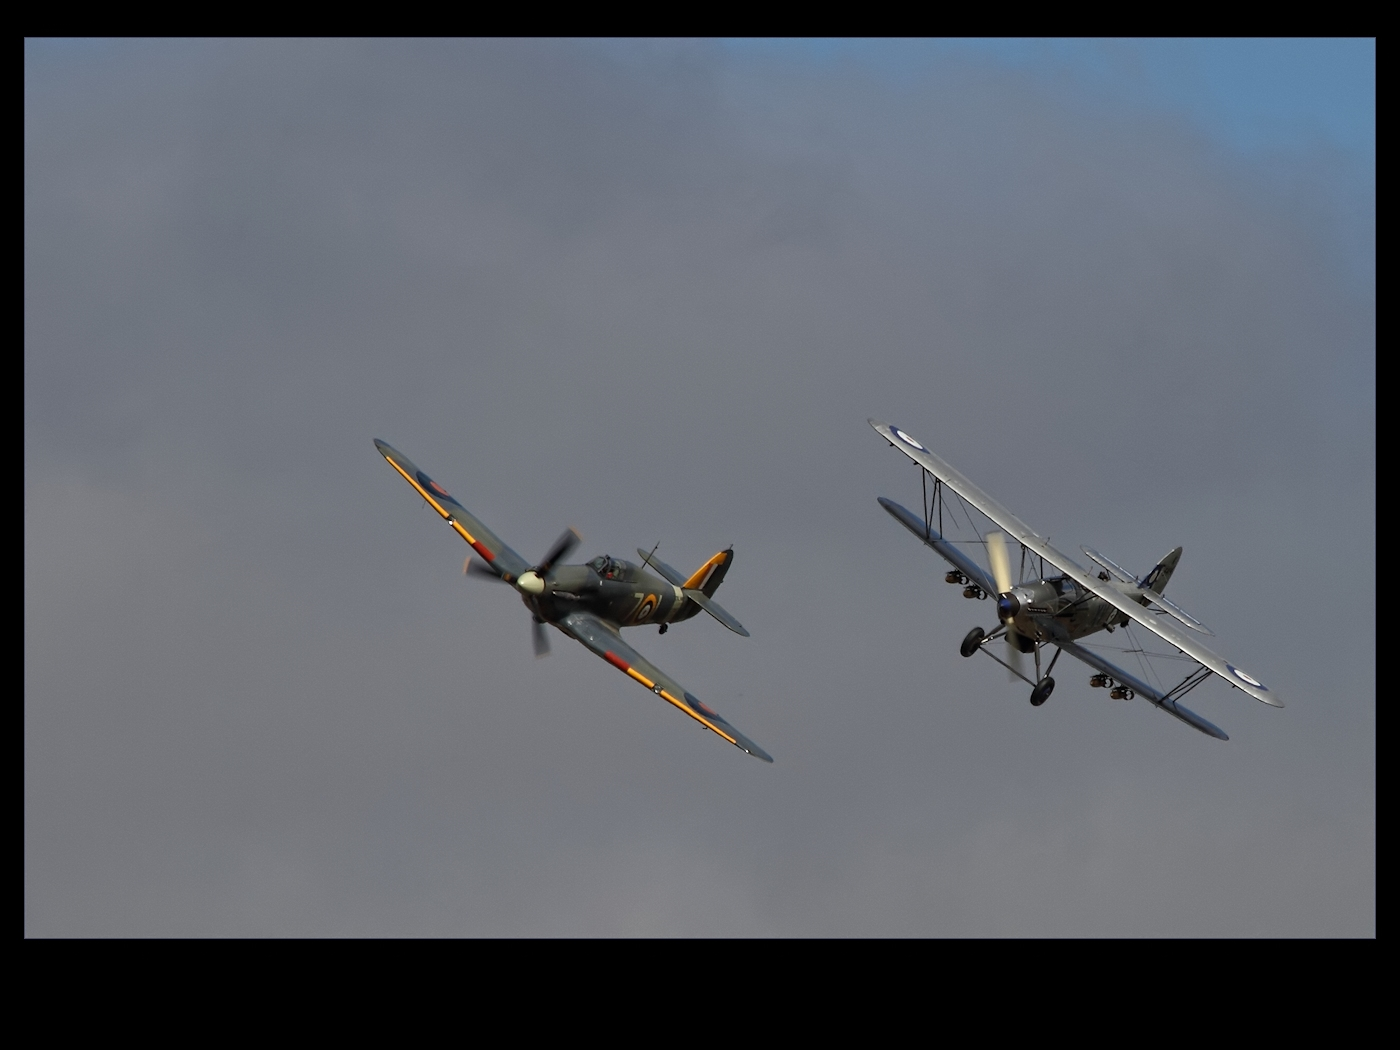 Hawker Sea Hurricane and Hawker Hind by Bogbrush